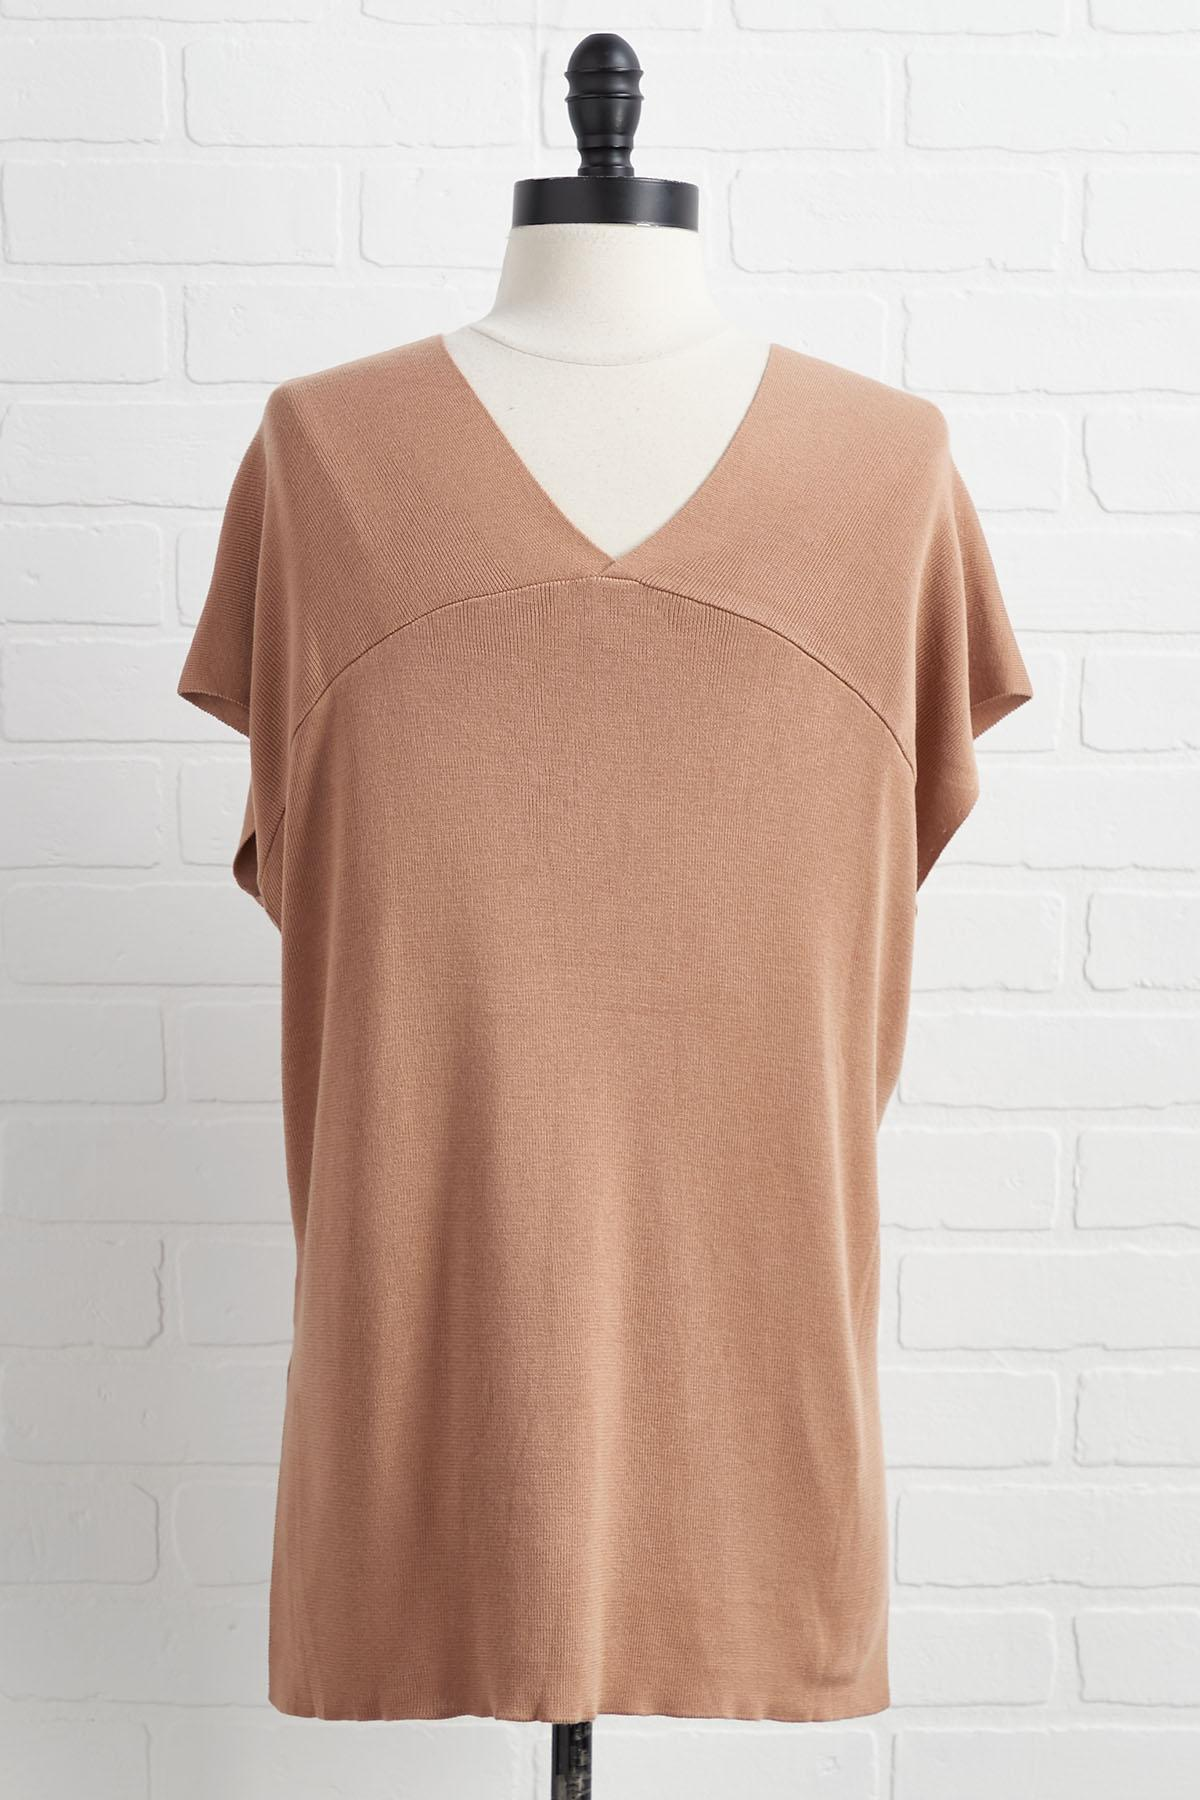 Table For Tunic Top